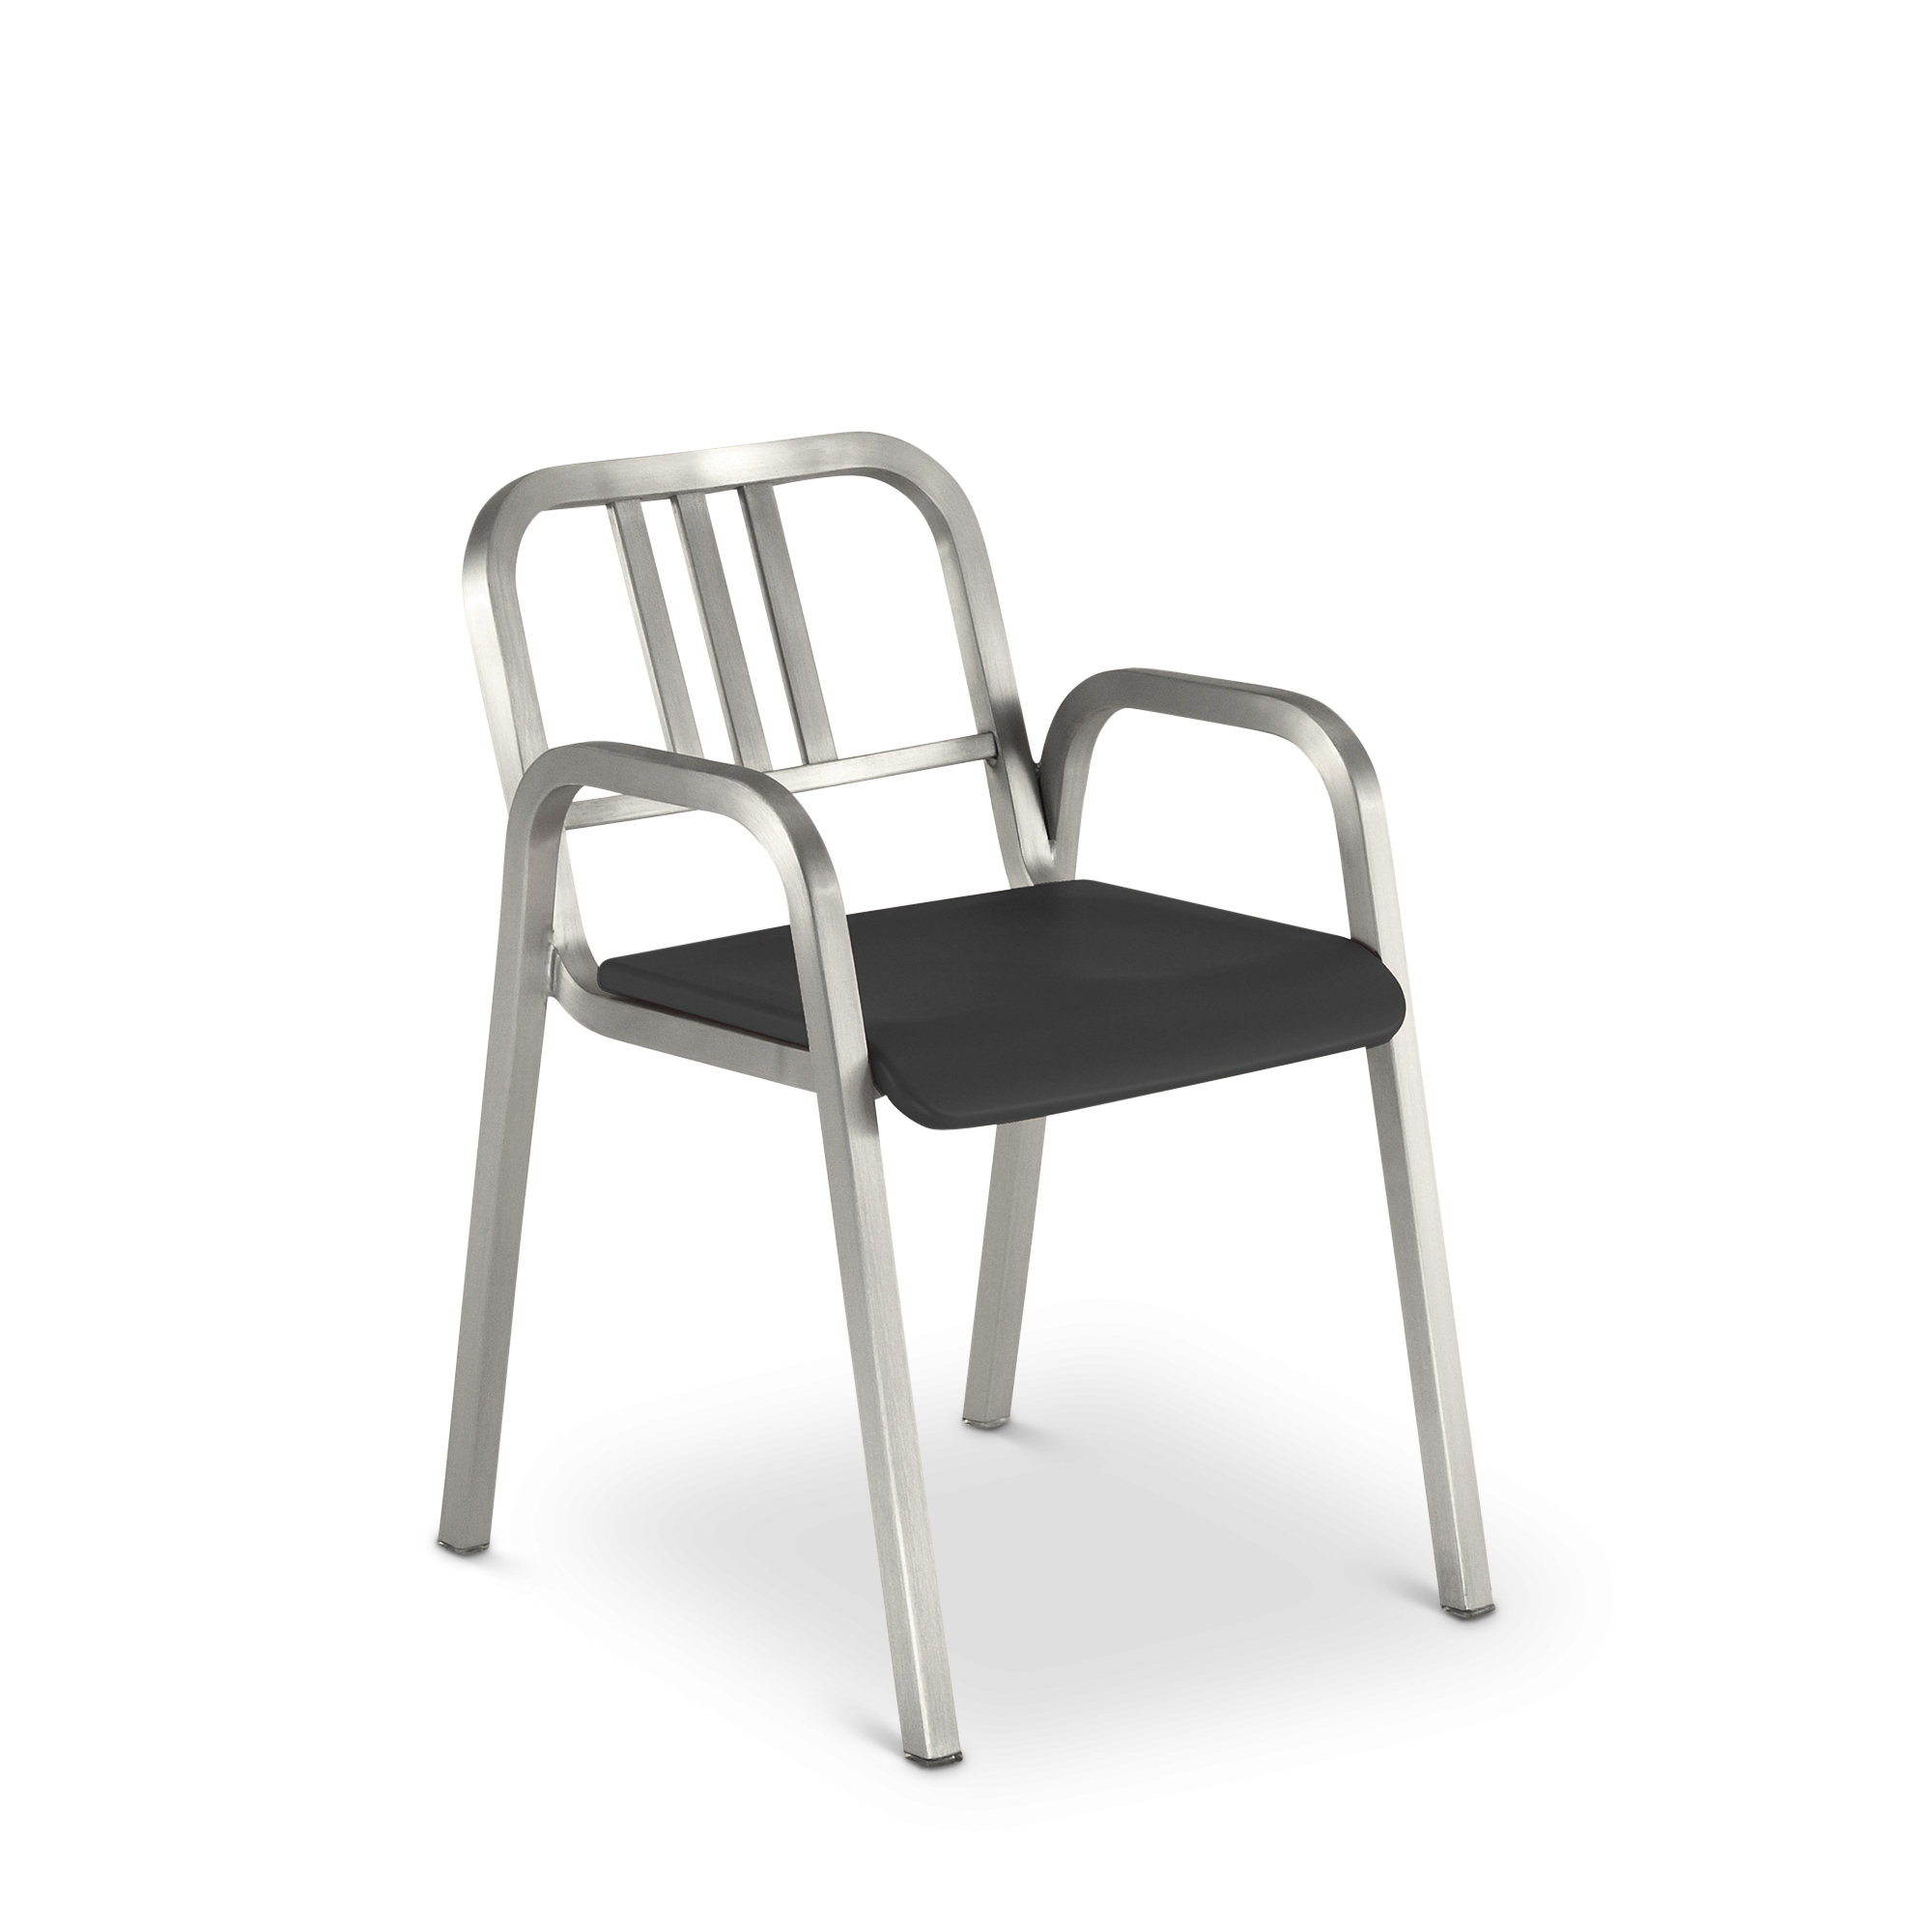 nine-0-armchair-gray